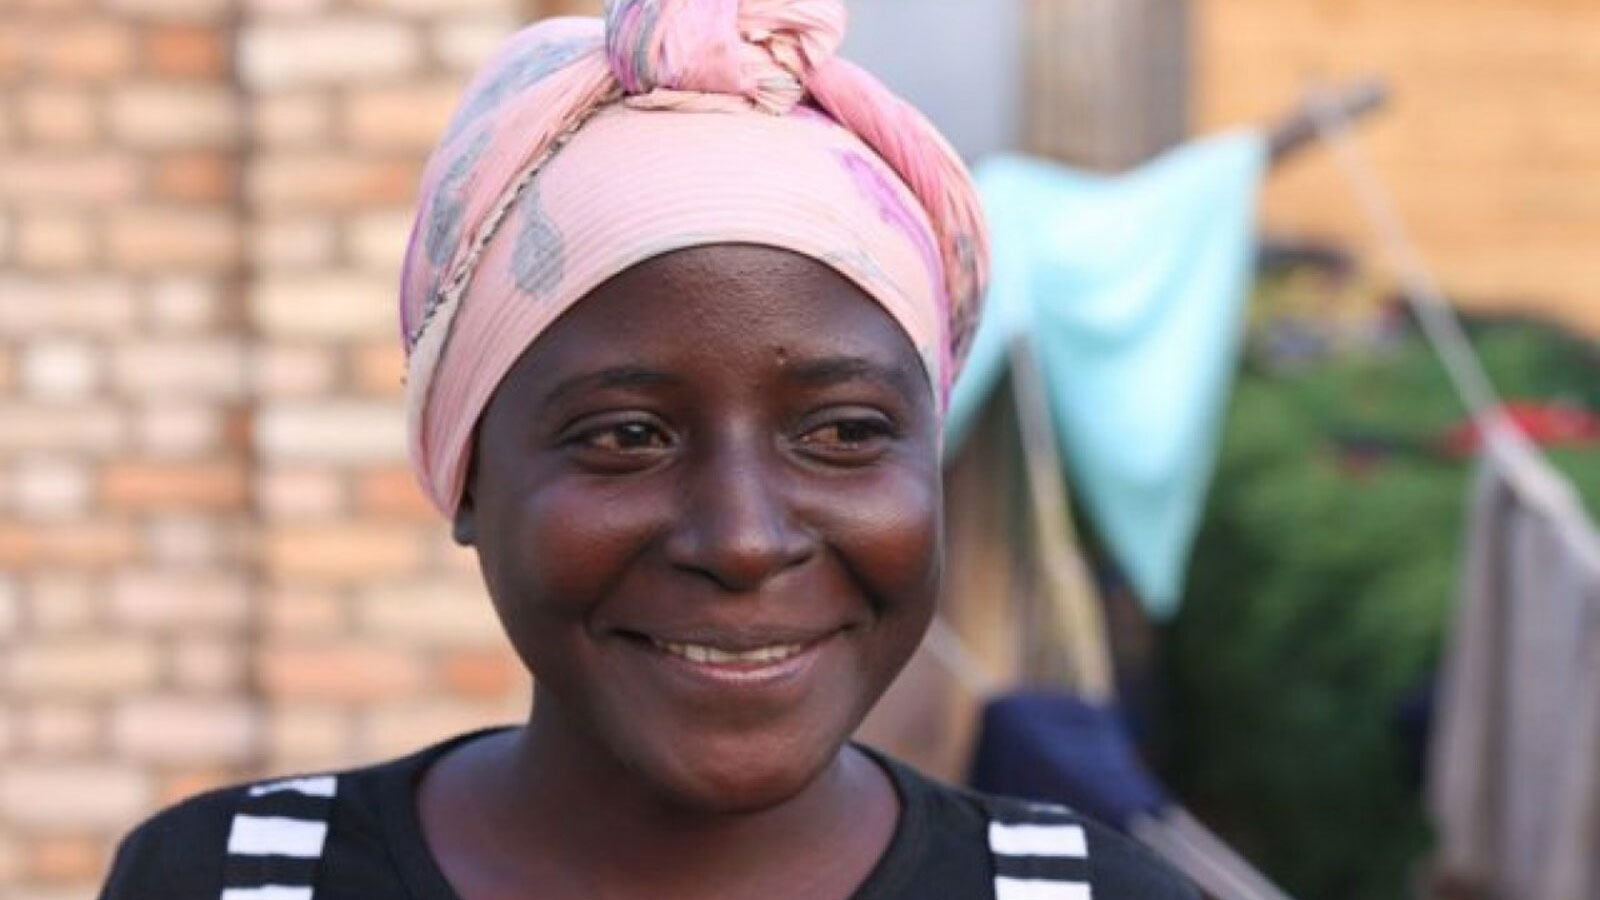 Burundi | One woman brings new hope to others after a life changing surgery